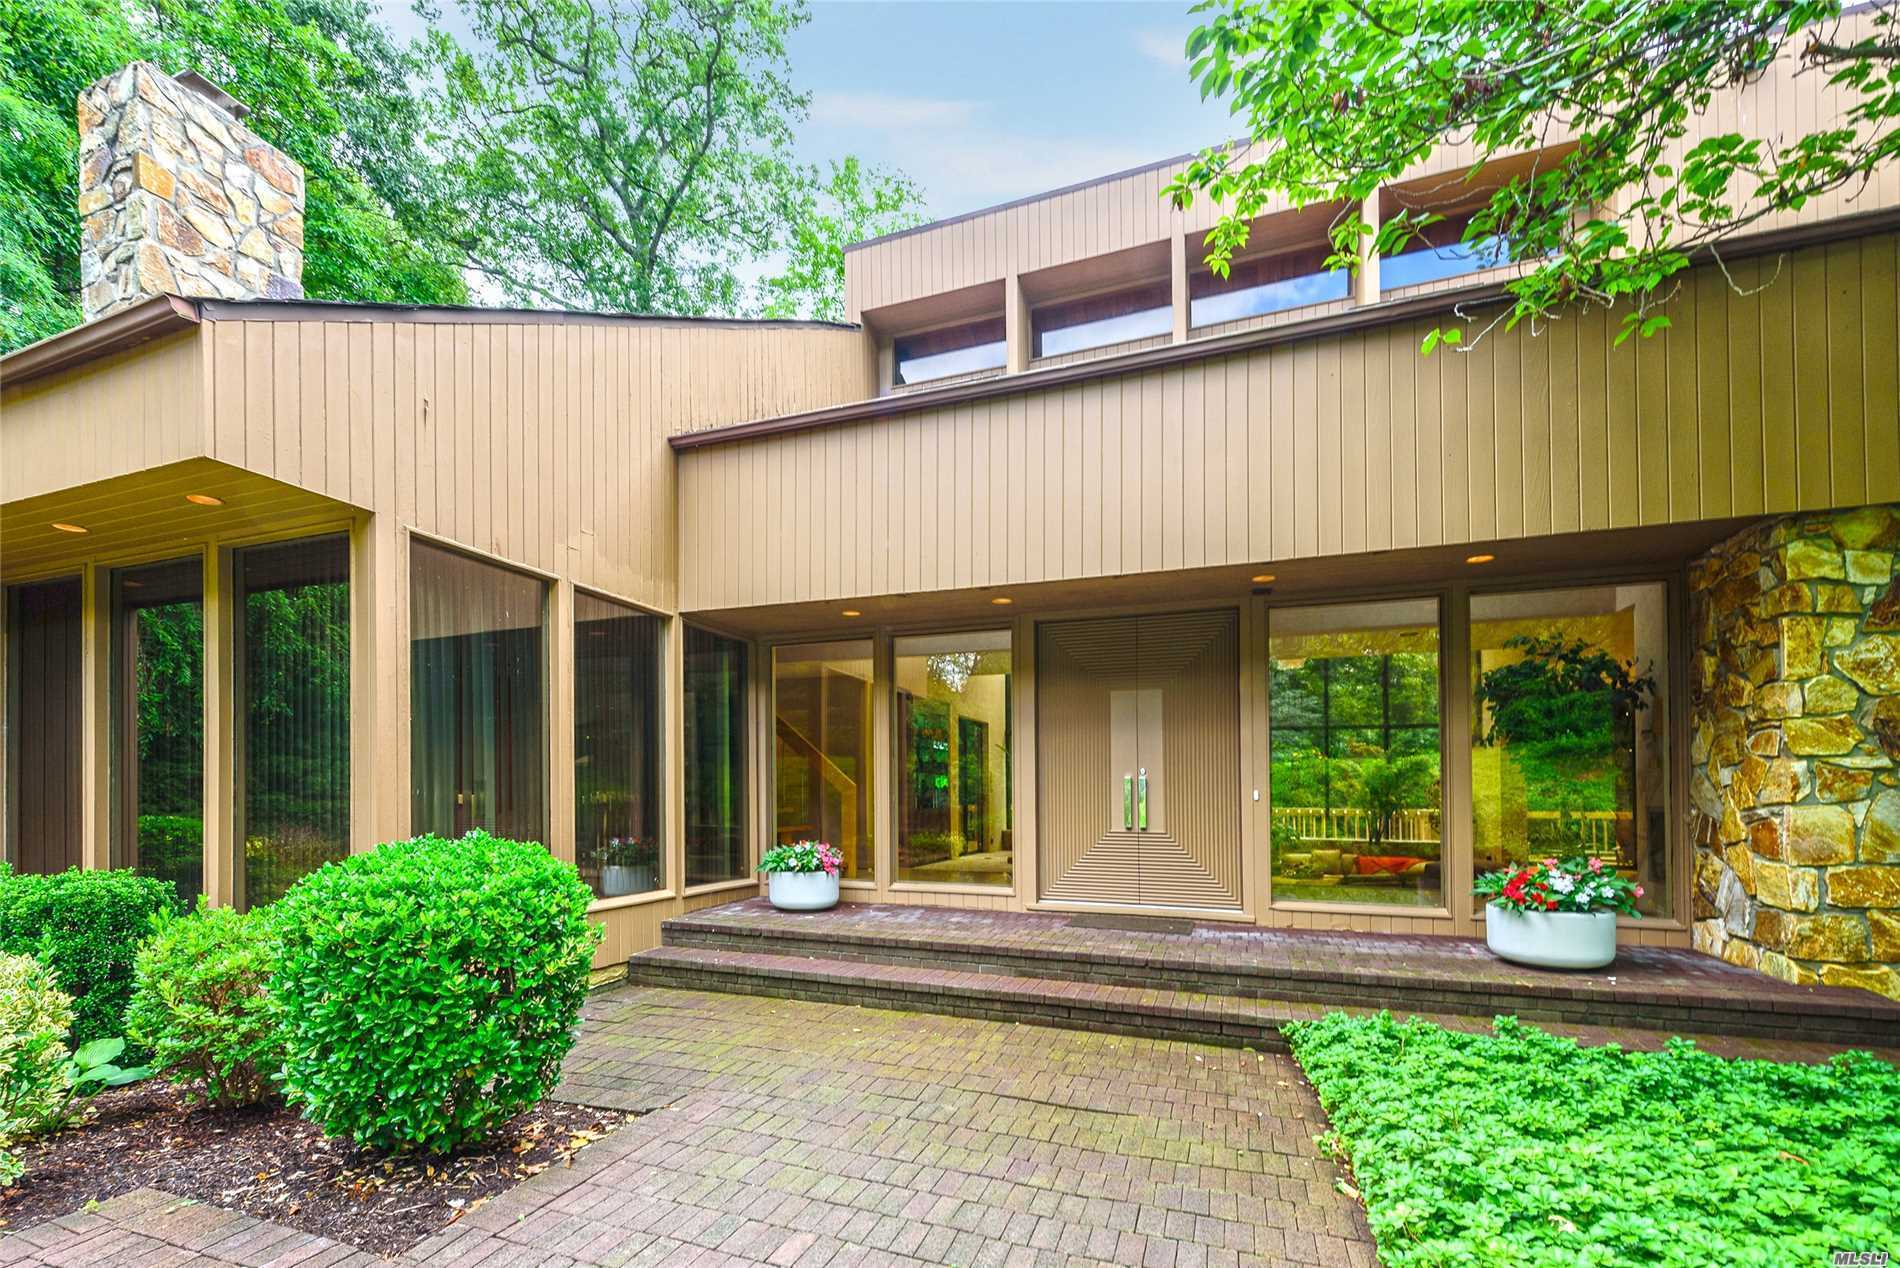 Secluded Estate On A Private Cul De Sac. A Must See Located On 2 Acres. Spacious Rooms, Plenty Of Closet & Storage Space, Skylights, Walls Of Windows. Many Rooms Walk Out To Deck Overlooking Country Club Style Pool Area. Lowest Level Walks Straight Out To Pool. Room For Tennis Court And More.